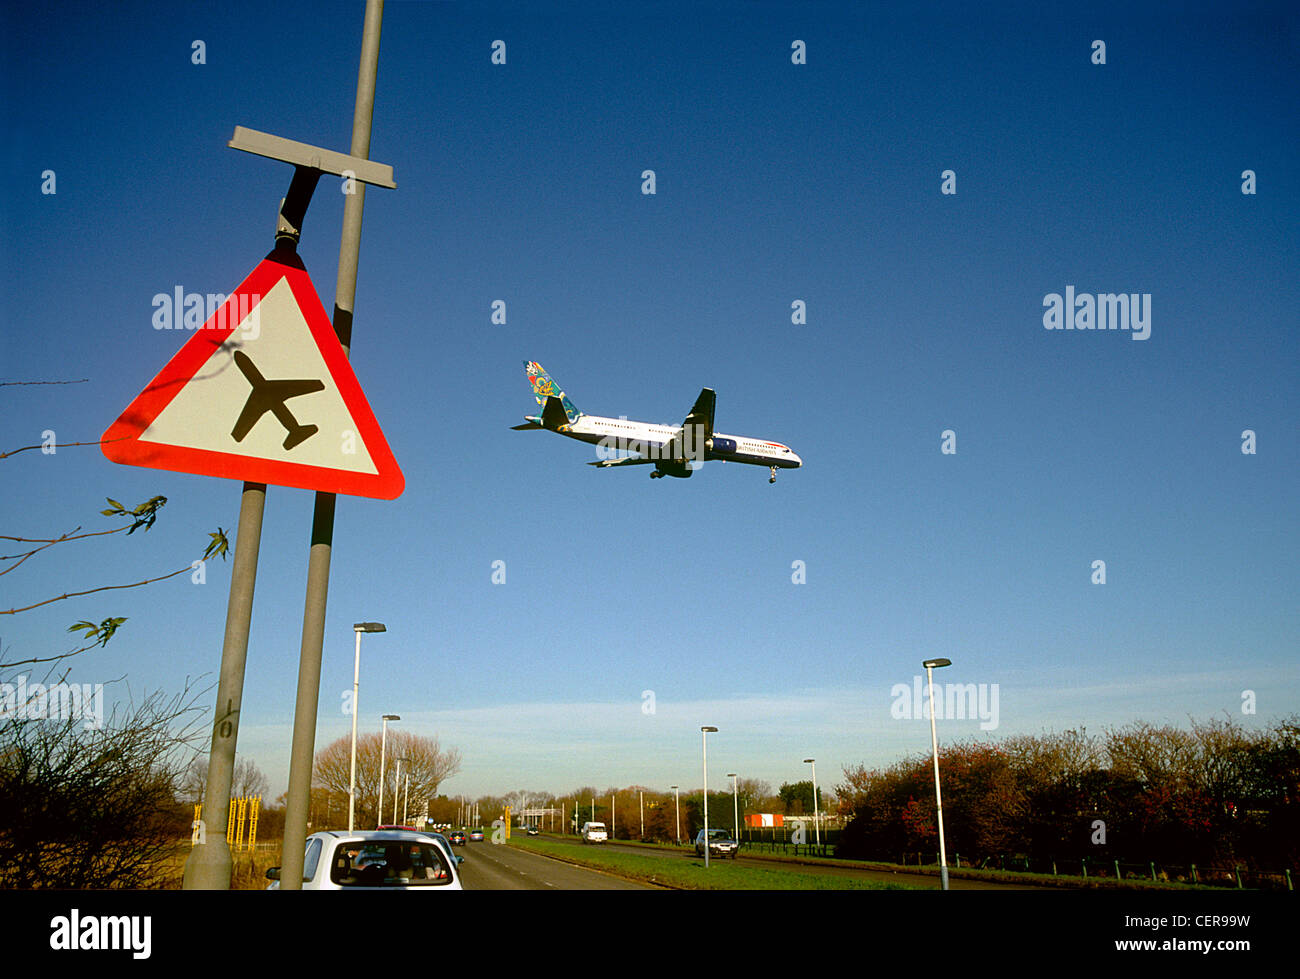 An aircraft coming in to land at Heathrow airport passing above a low flying plane sign by the roadside. - Stock Image